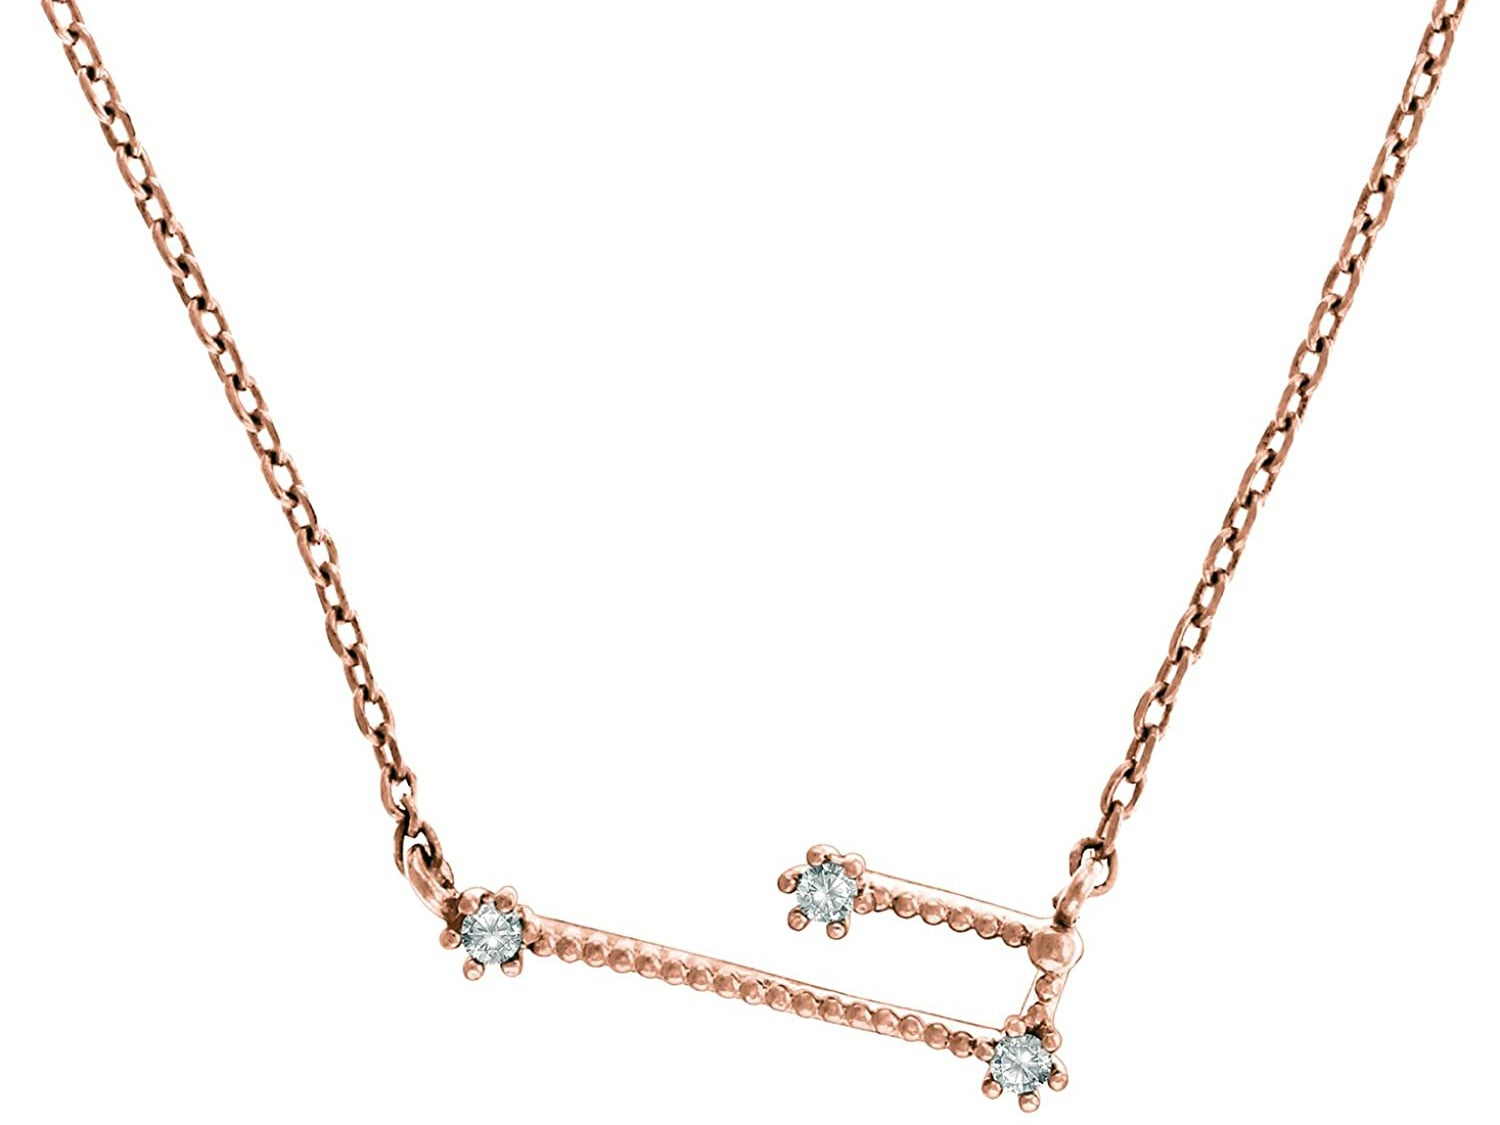 PAVOI 14K Gold Plated Astrology Constellation Necklace